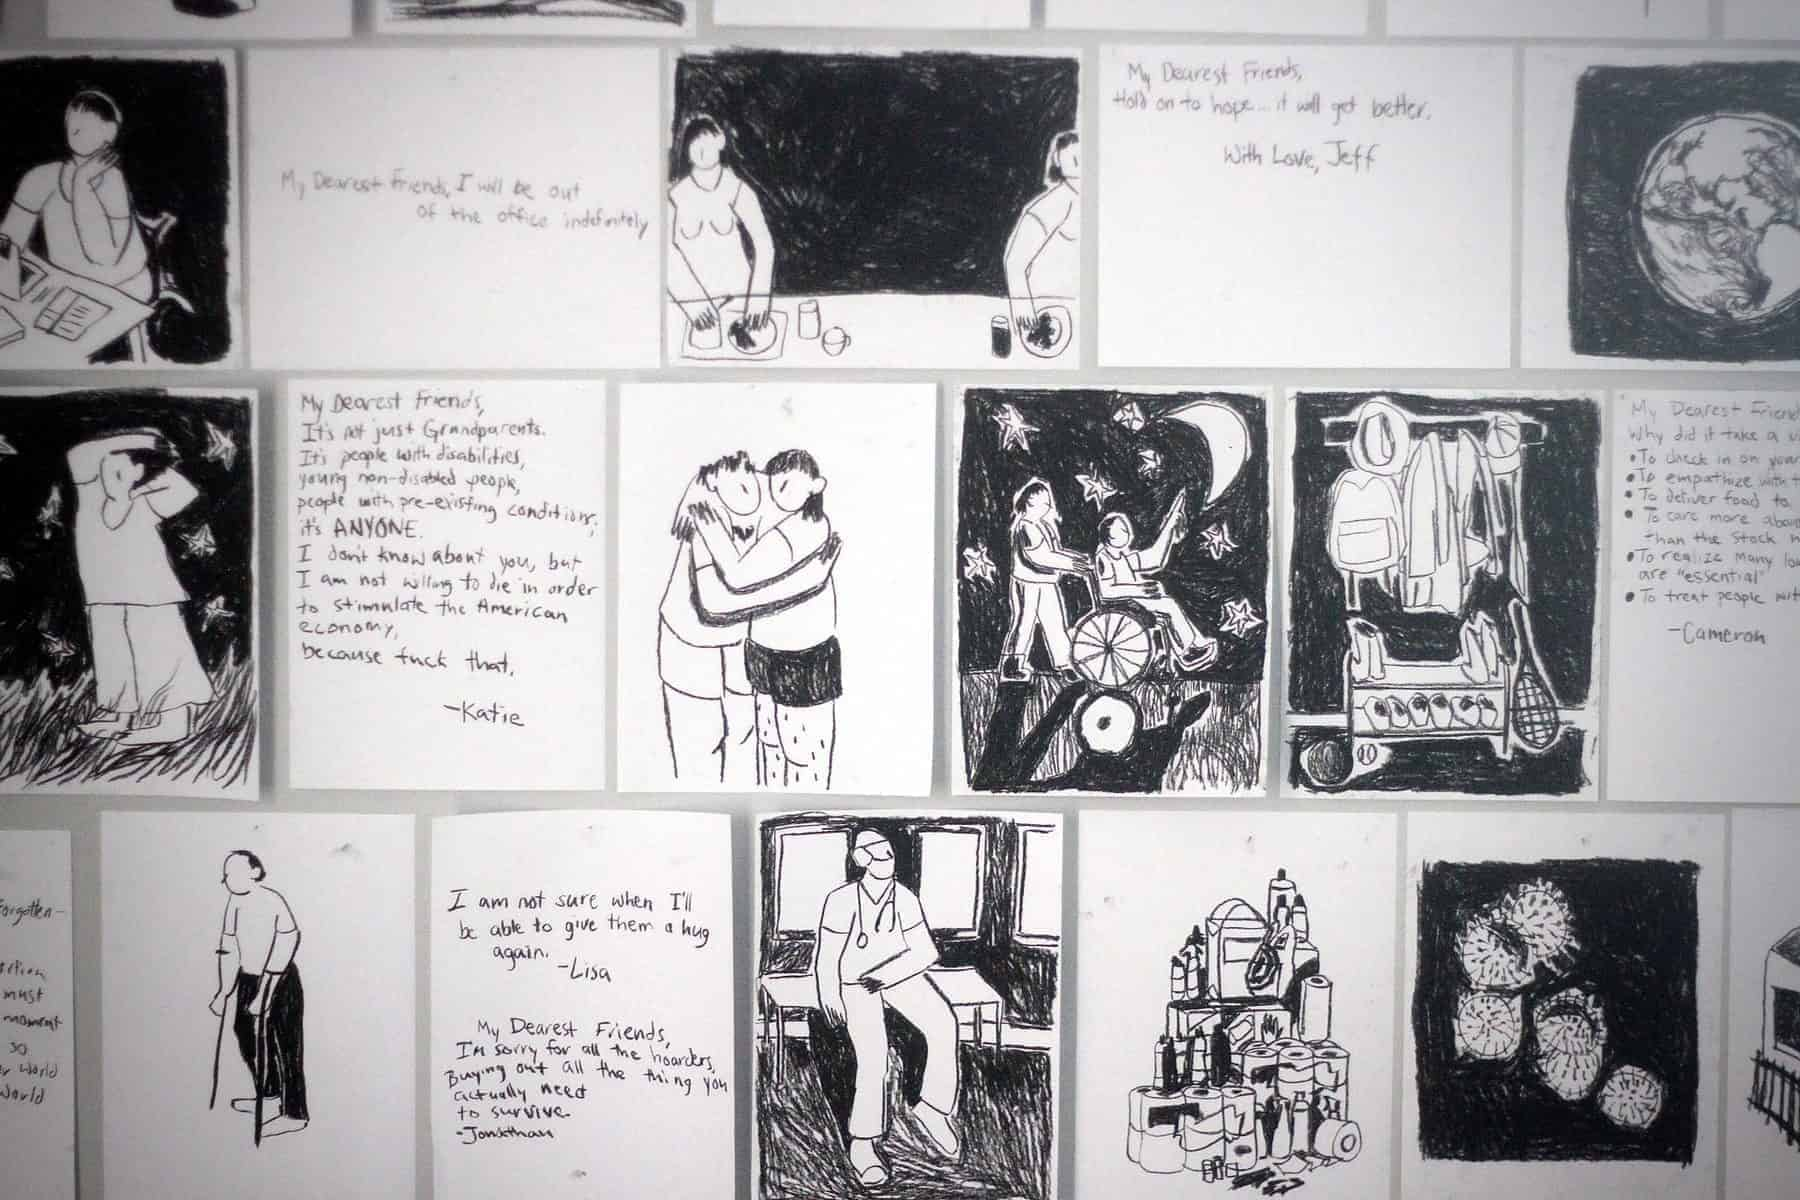 "A white wall is completely covered in 8"" x 10"" abstract charcoal drawings. Some of the imagery includes a microscopic view of COVID-19, a pile of hoarded toilet paper, a doctor, a person using forearm crutches, two people hugging, along with various handwritten notes."